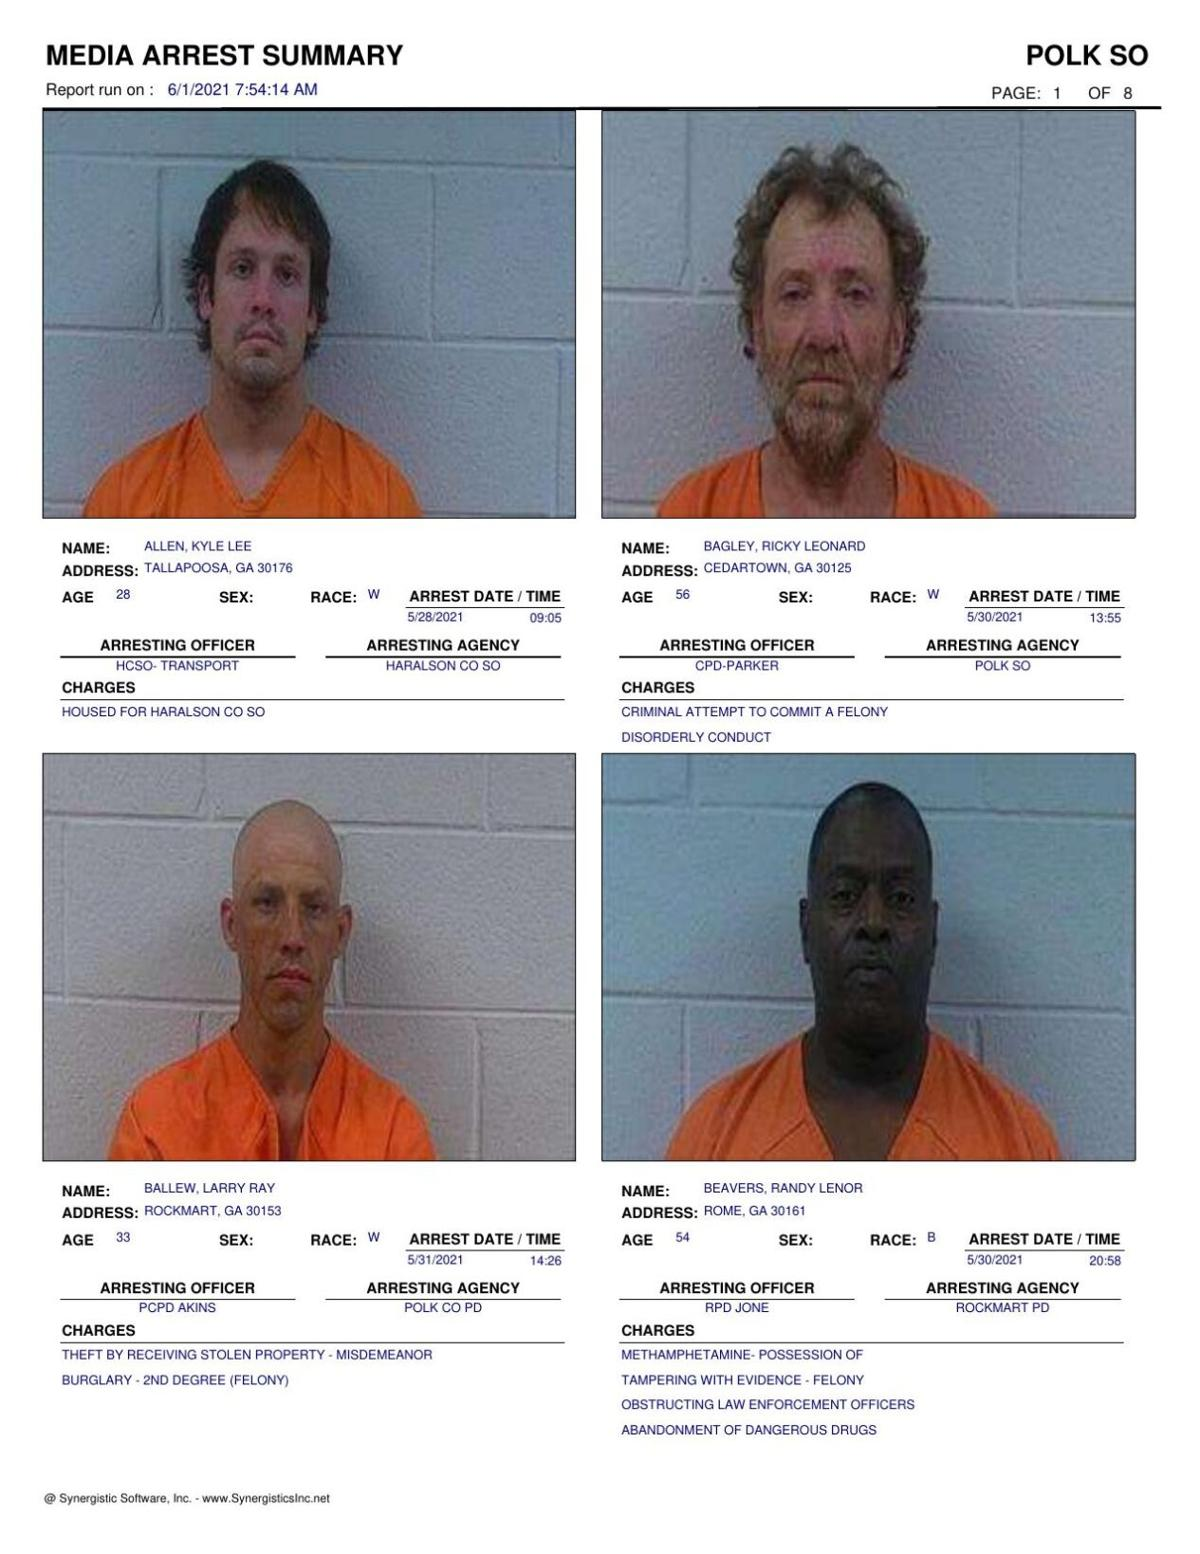 Polk County Jail Report for Tuesday, June 1